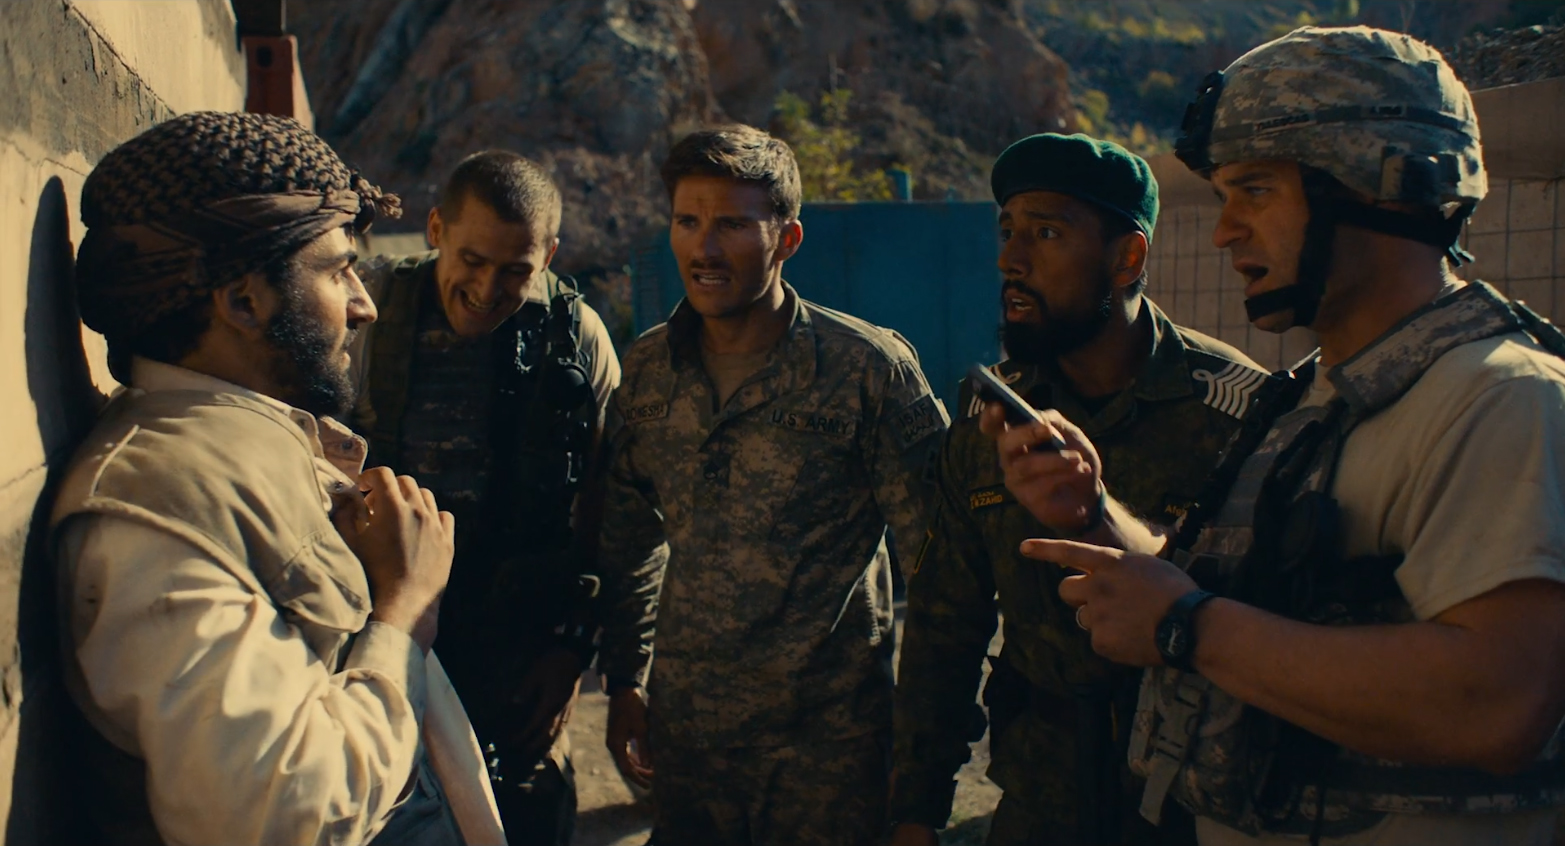 Scott Eastwood, Jack Kesy, Milo Gibson, and Ahmad Sakhi in The Outpost (2020)